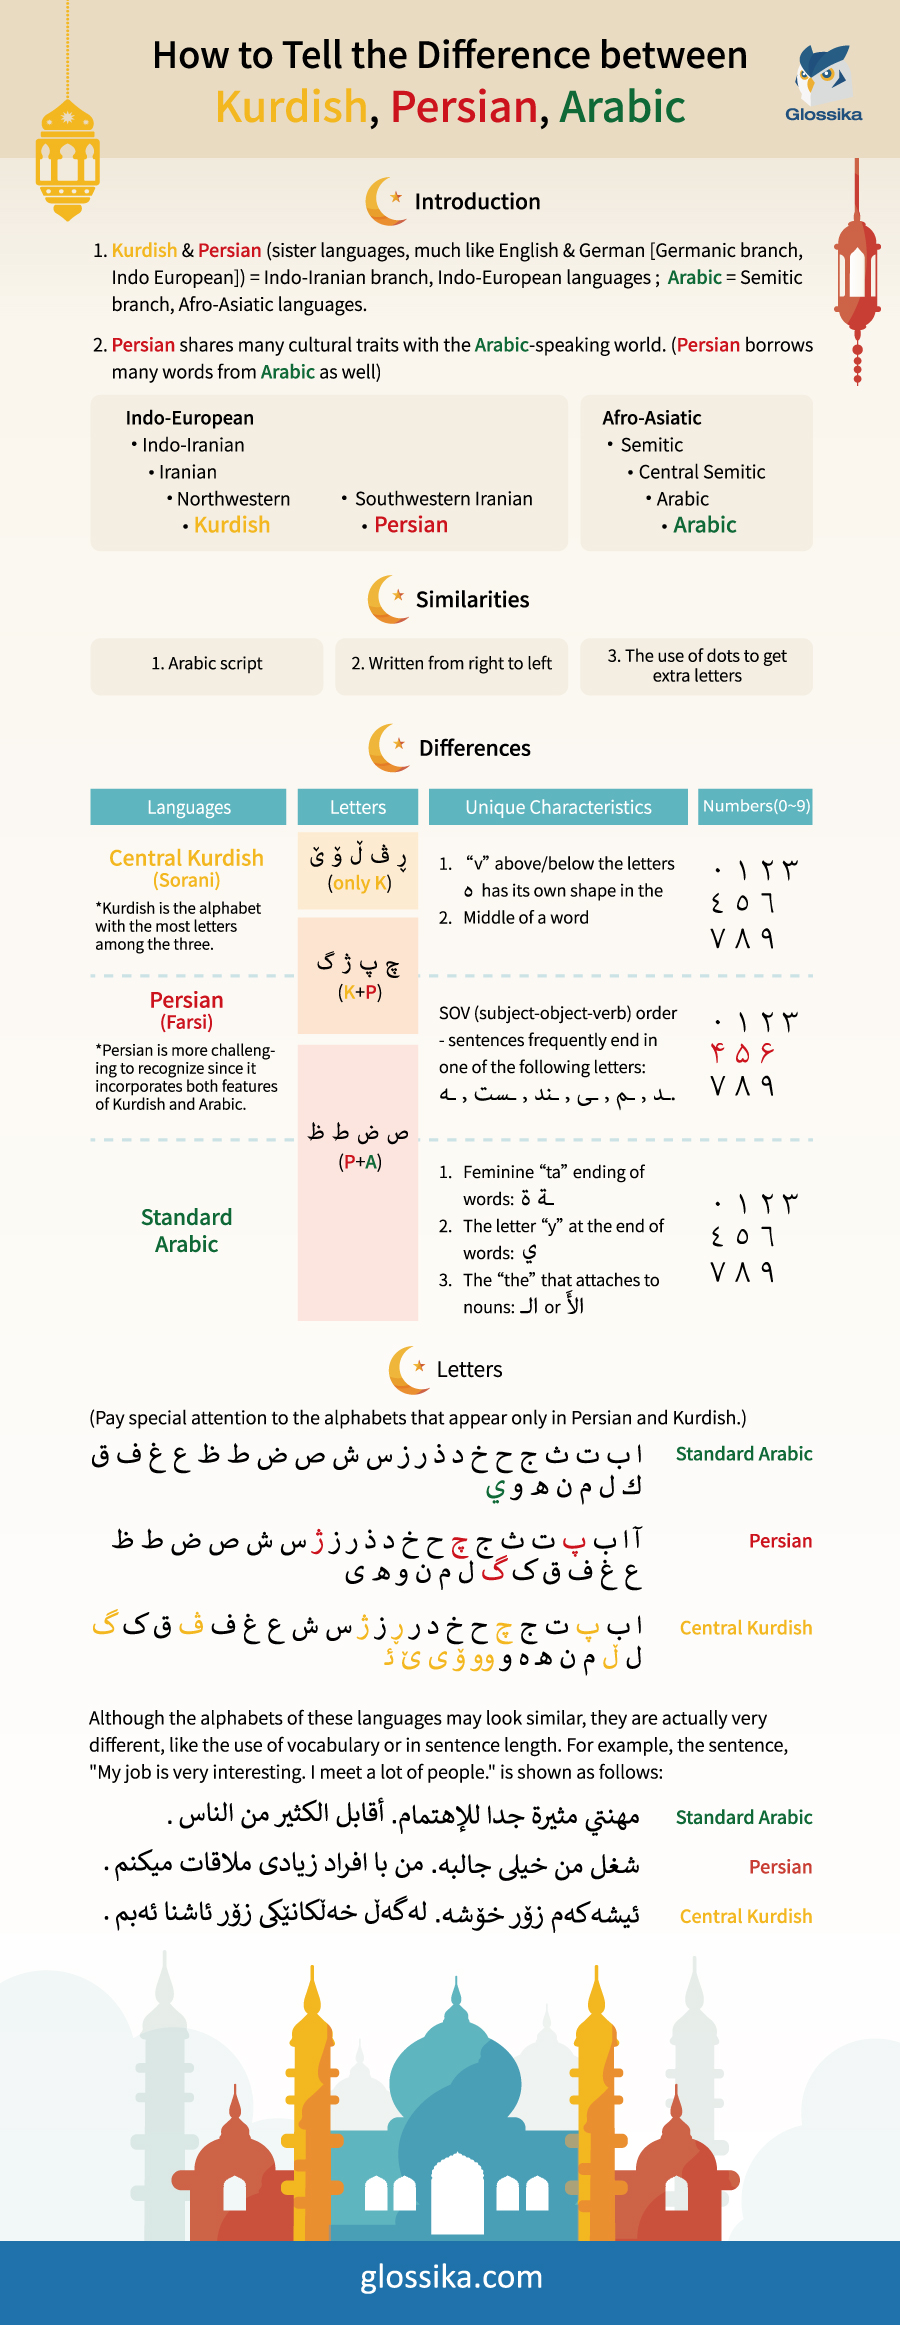 How to Tell the Difference between Arabic, Persian, Kurdish